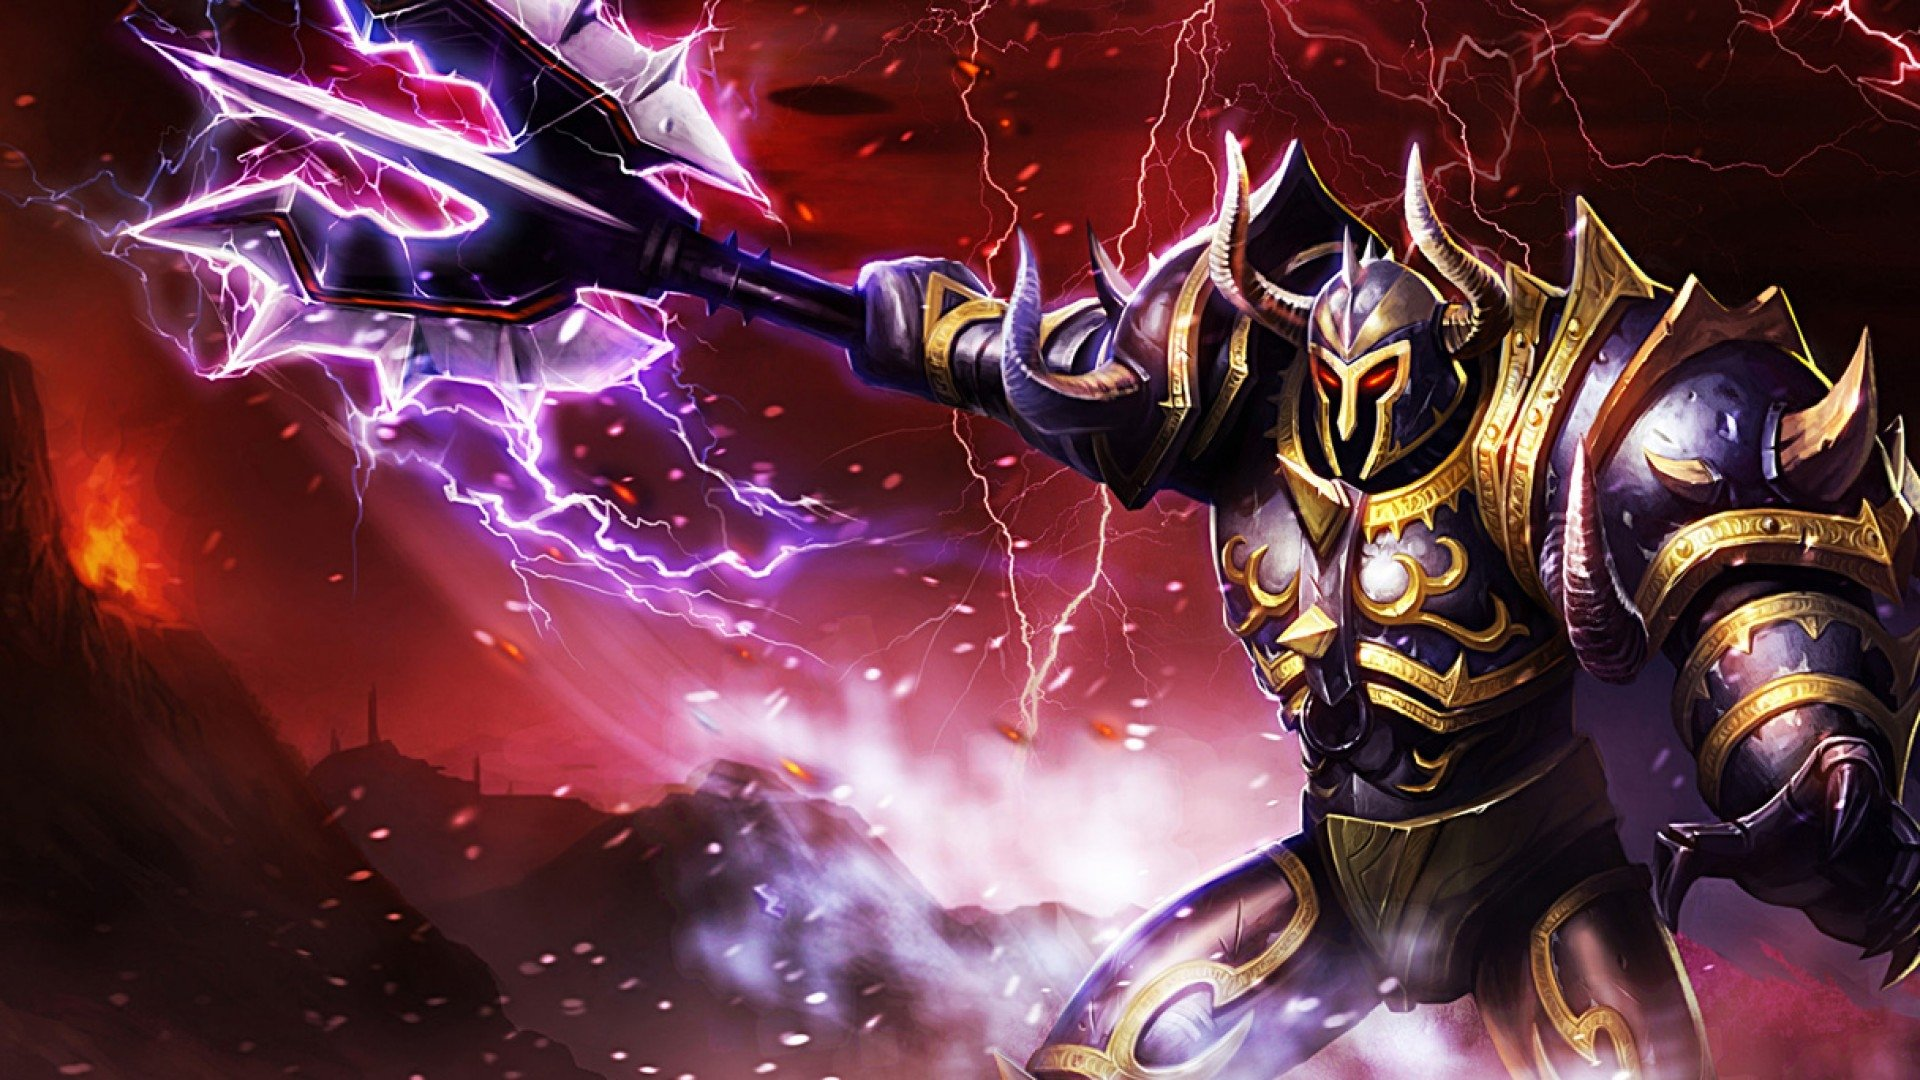 Video Game - League Of Legends  Mordekaiser (League Of Legends) Wallpaper